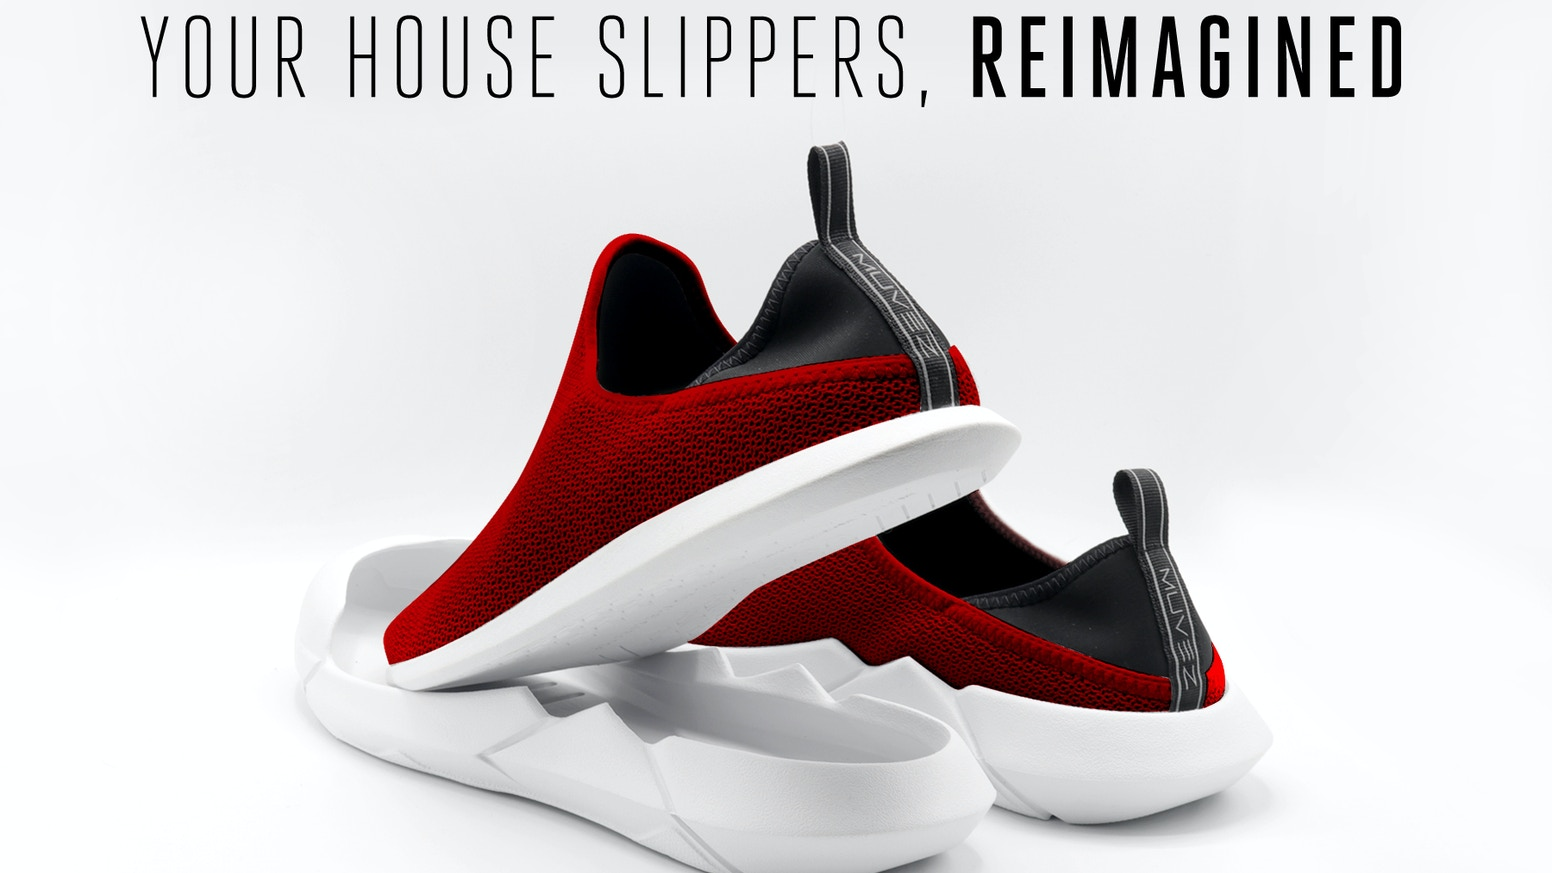 3:AMs combine the functionality and detail of an athletic shoe with the comfort and convenience of casual house slippers